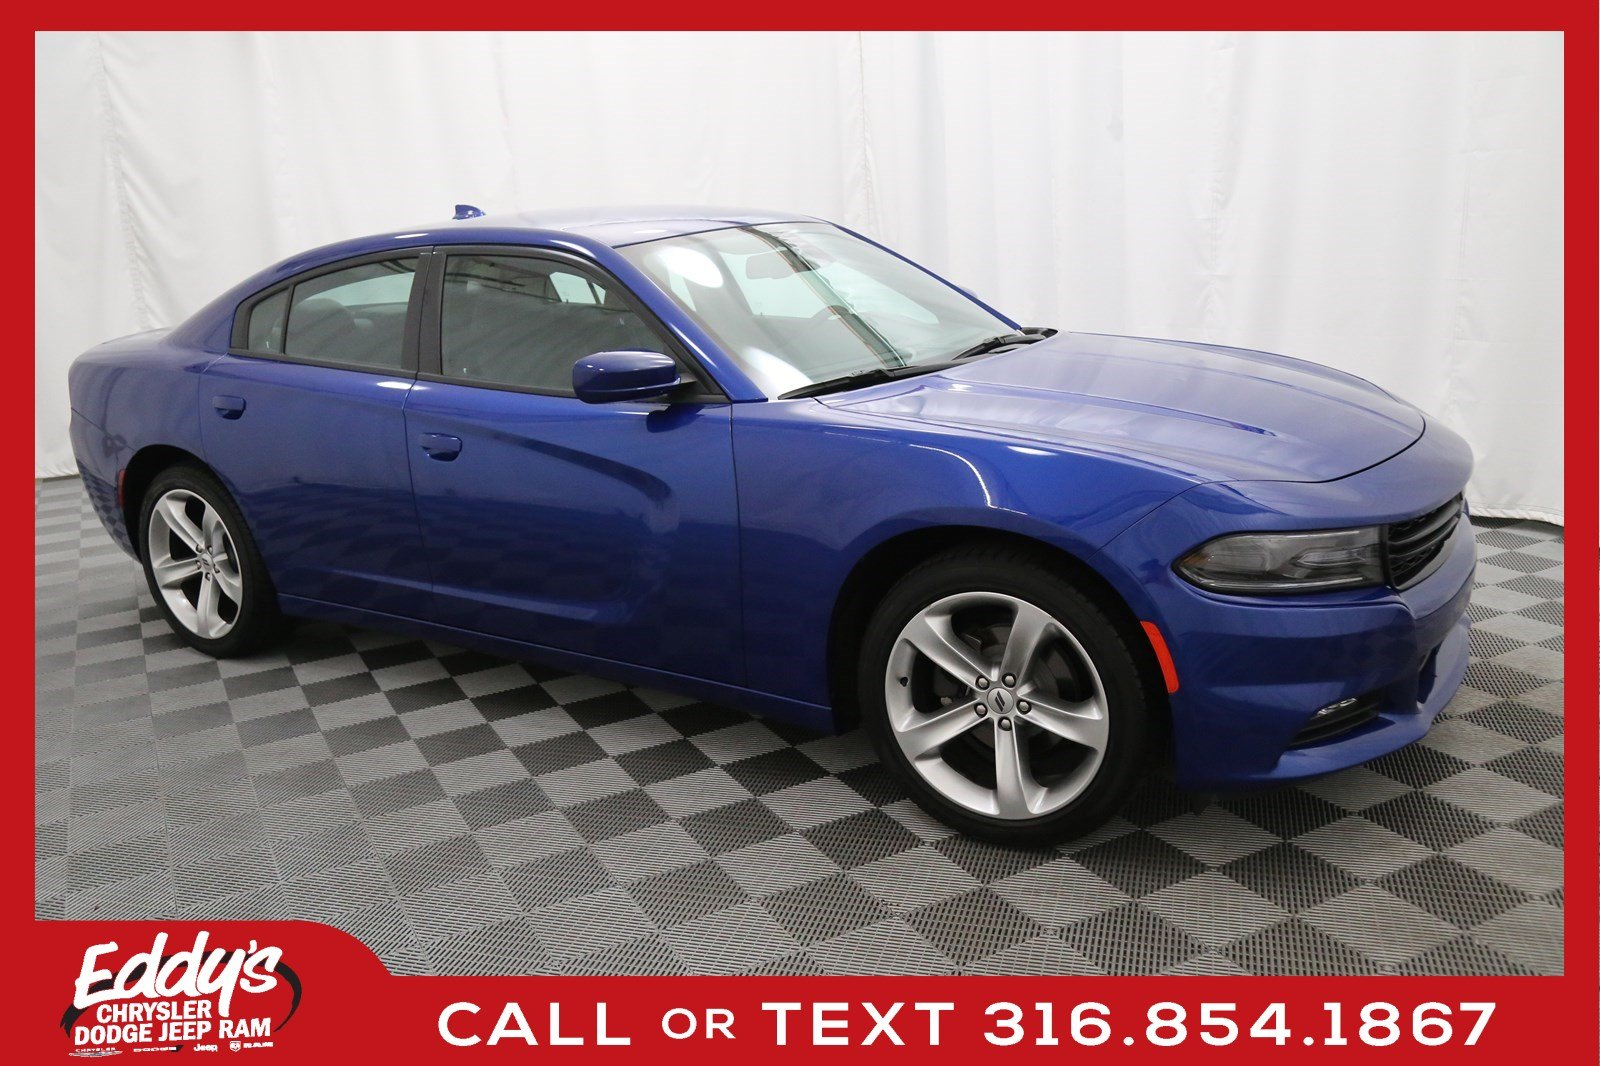 sedan rwd in olathe inventory new sxt dodge charger plus